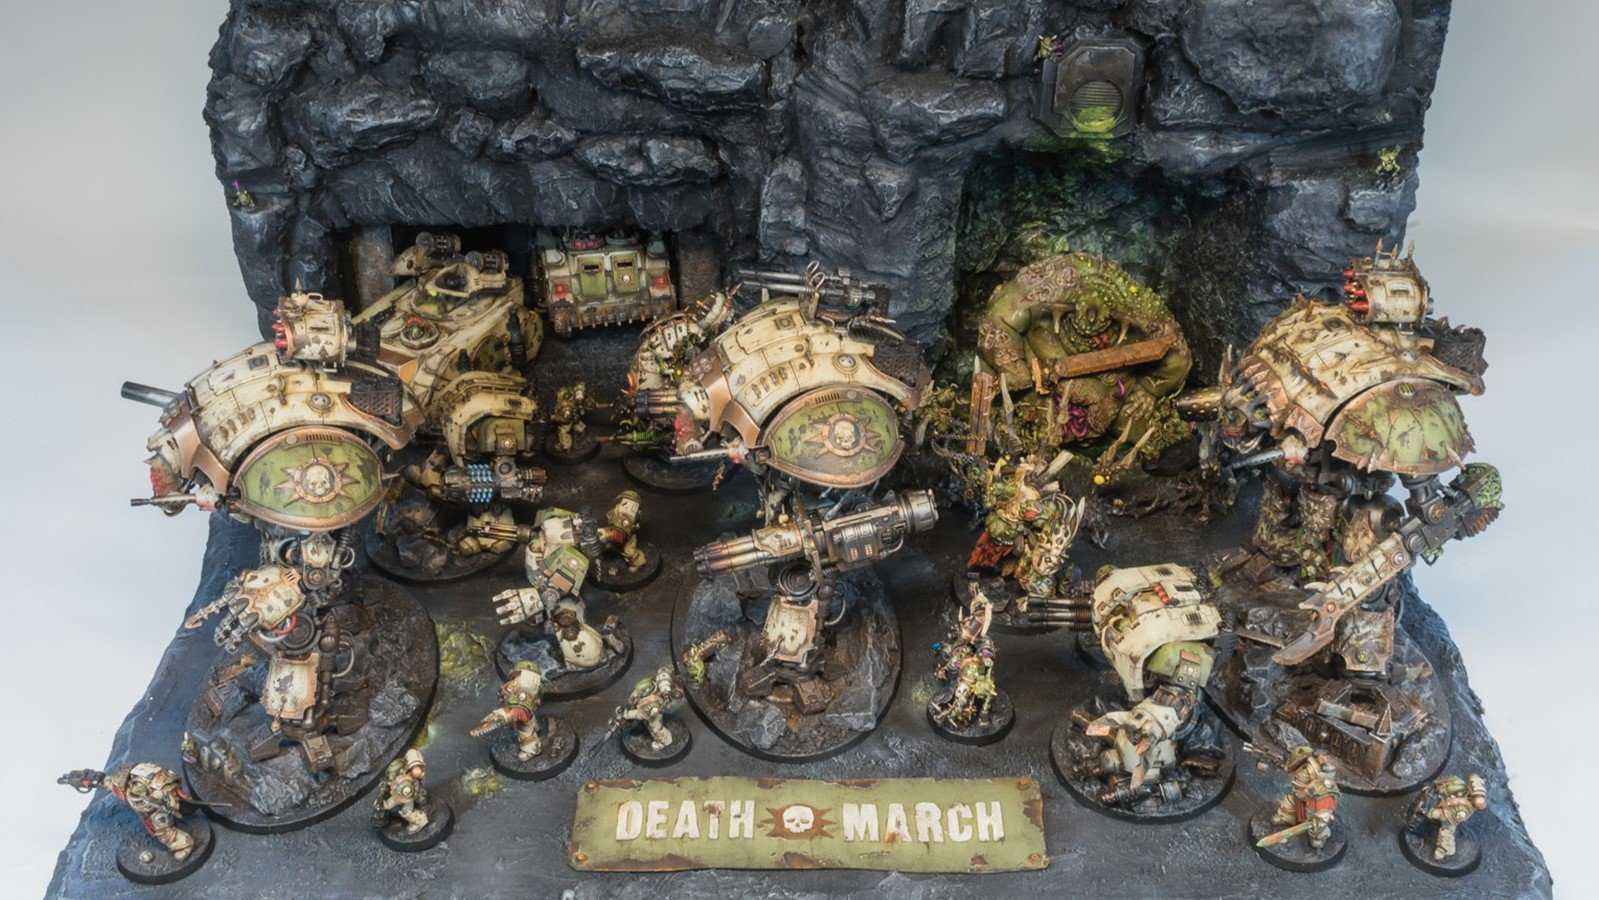 Warhammer Fan Creates Winning Display for Armies of Parade | All3DP